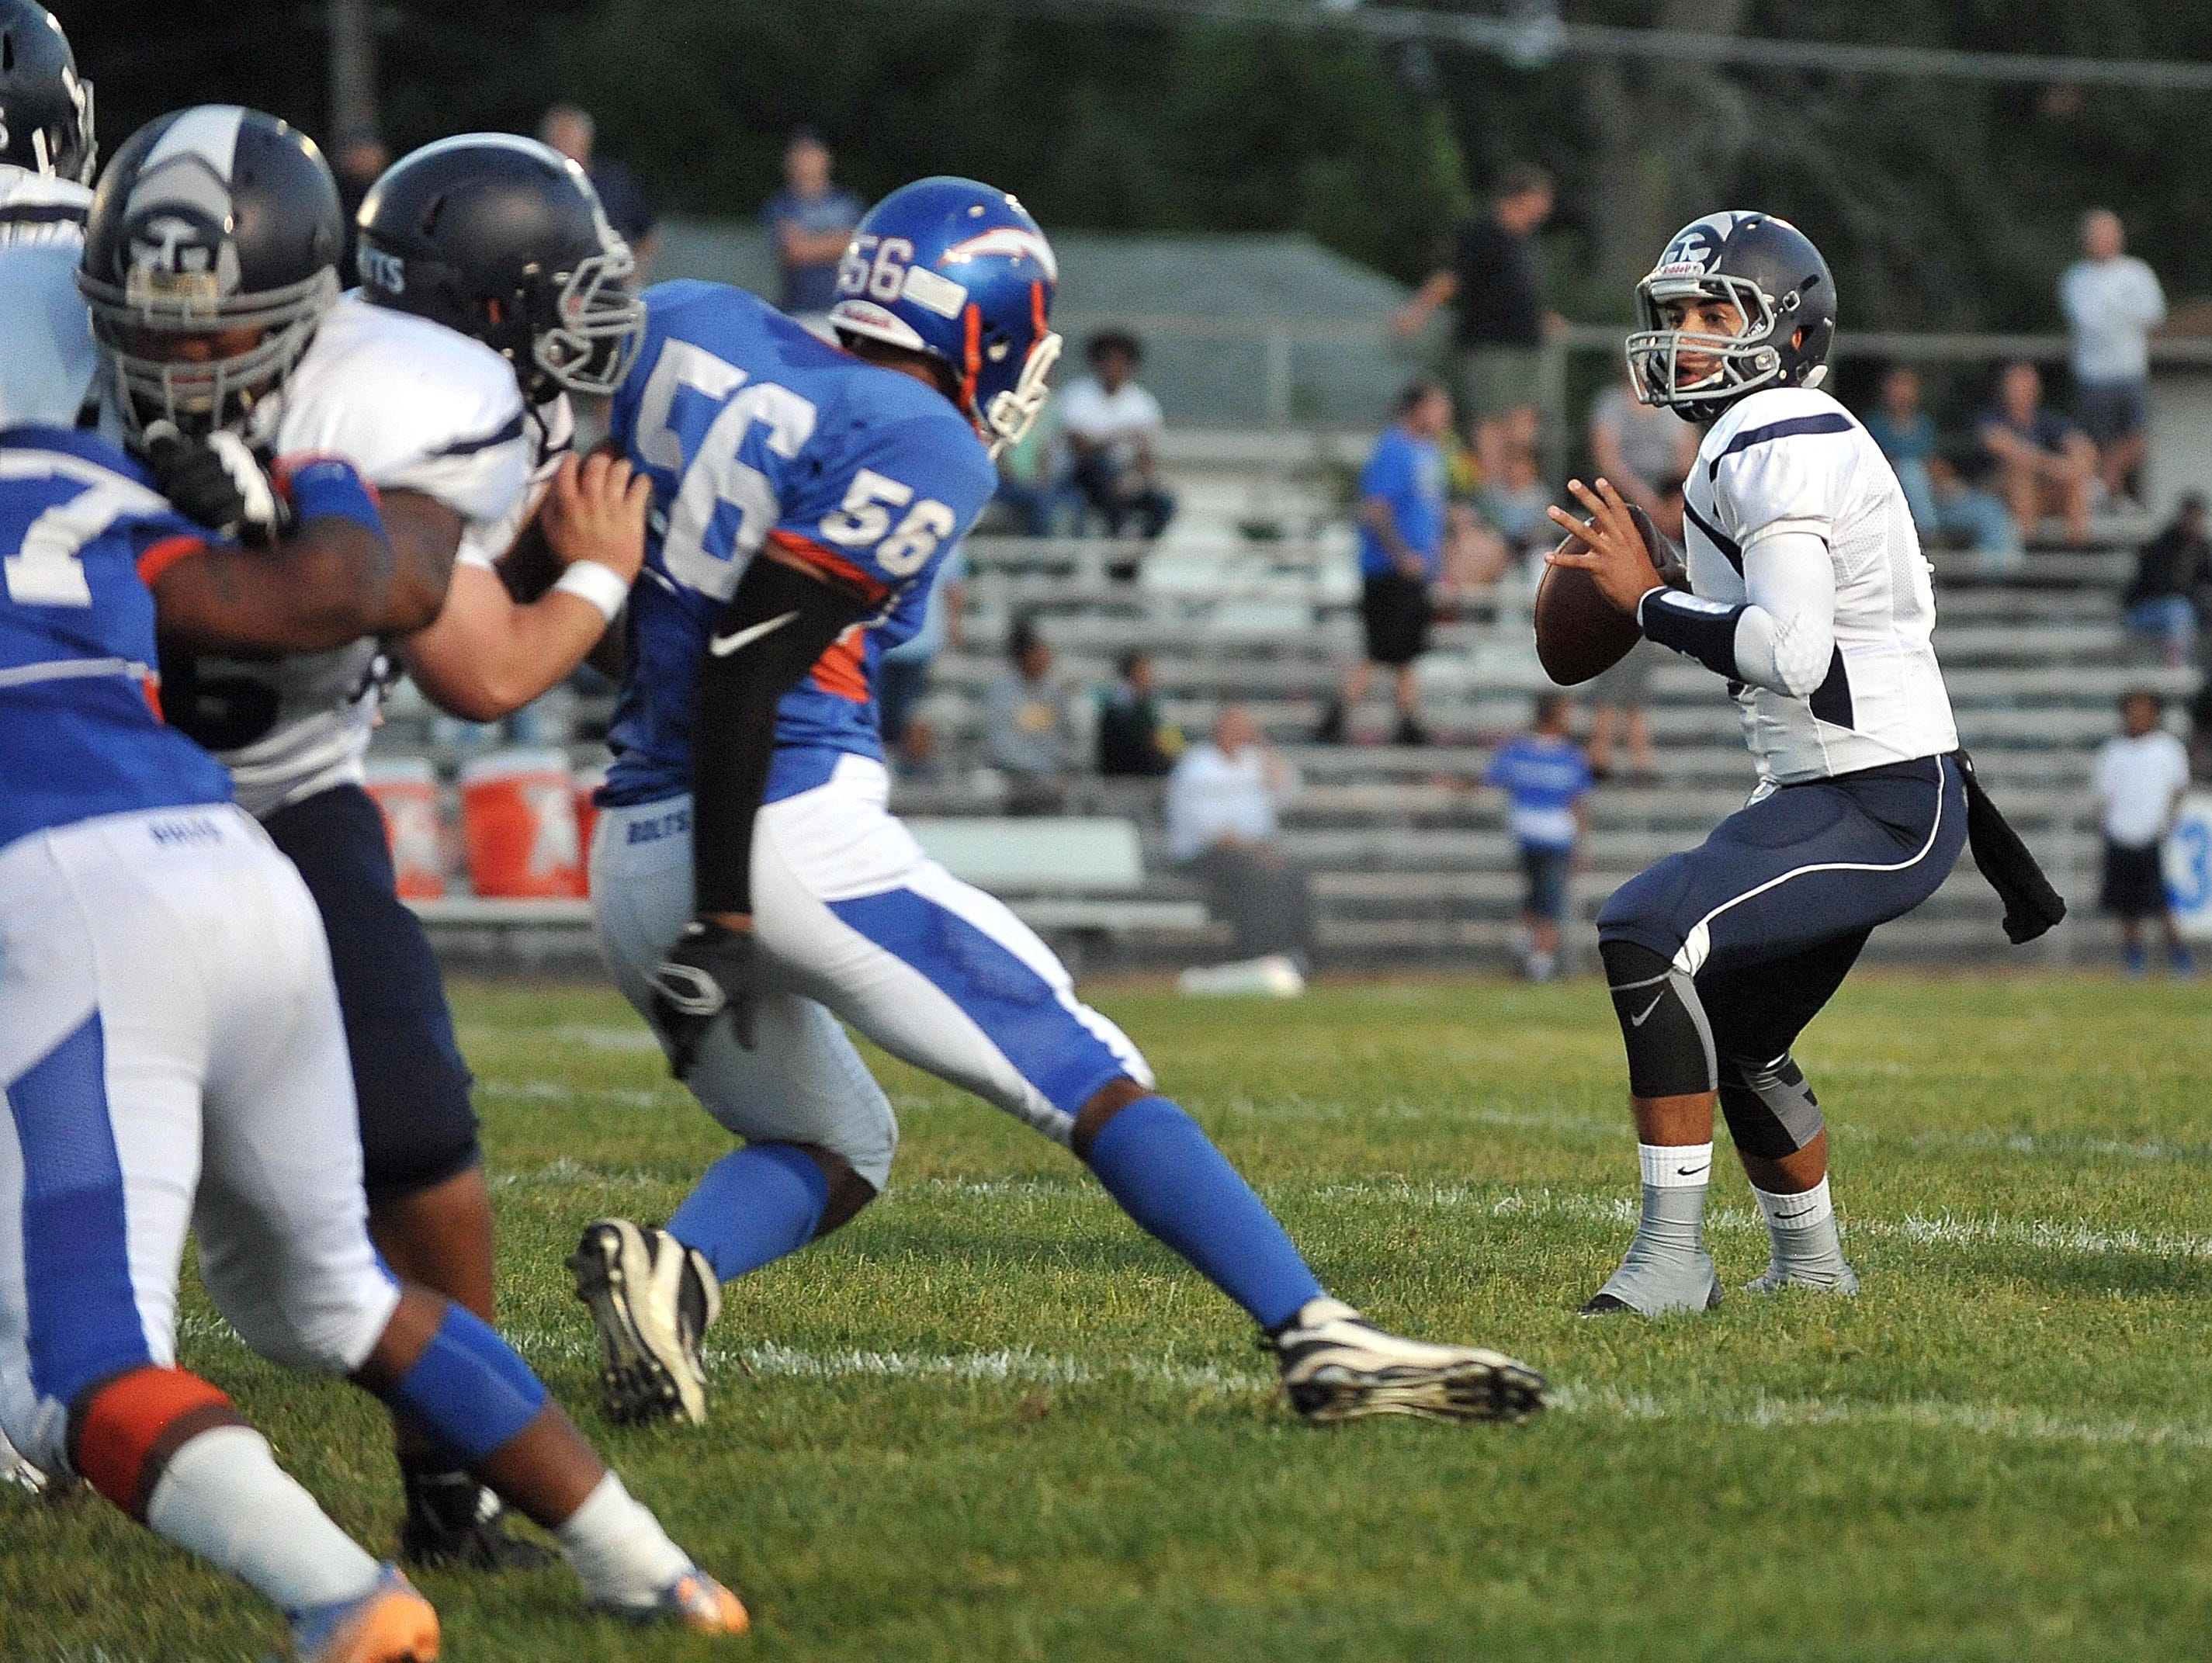 St. Augustine quarterback Jose Tabora (5) looks to throw against Millville, Friday, Sep. 18, in Millville.